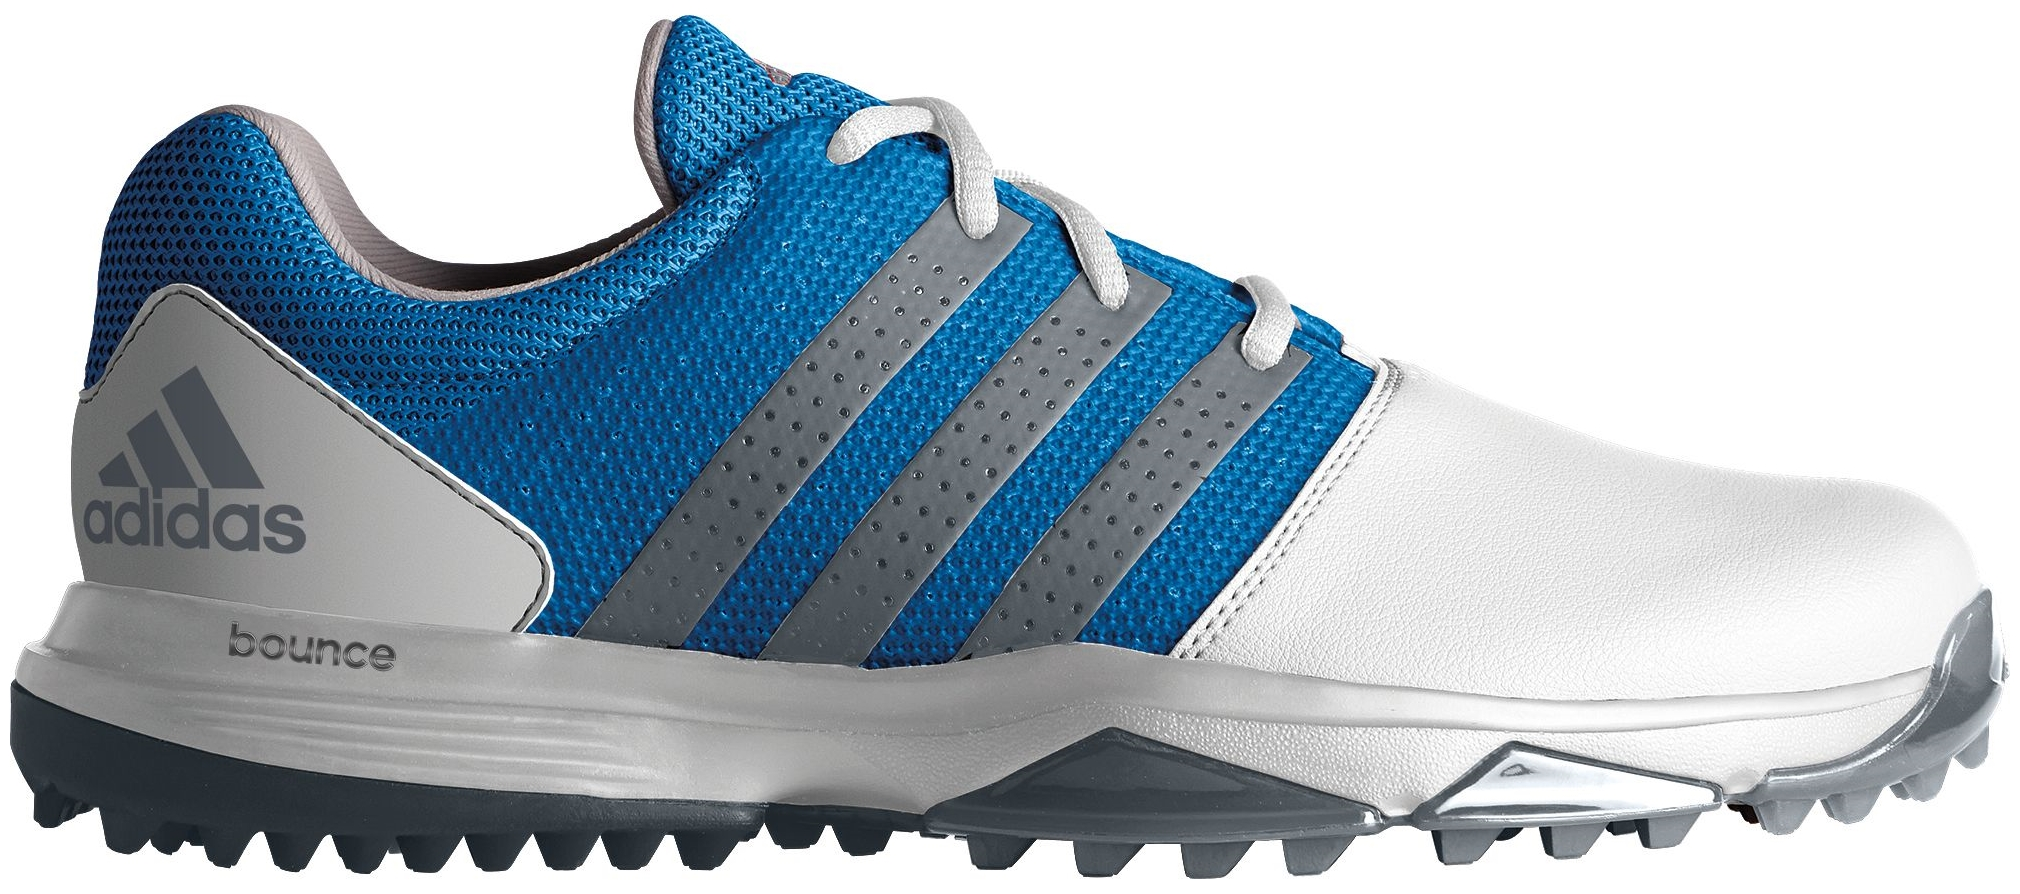 adidas 360 TRAXION Golf Shoes by